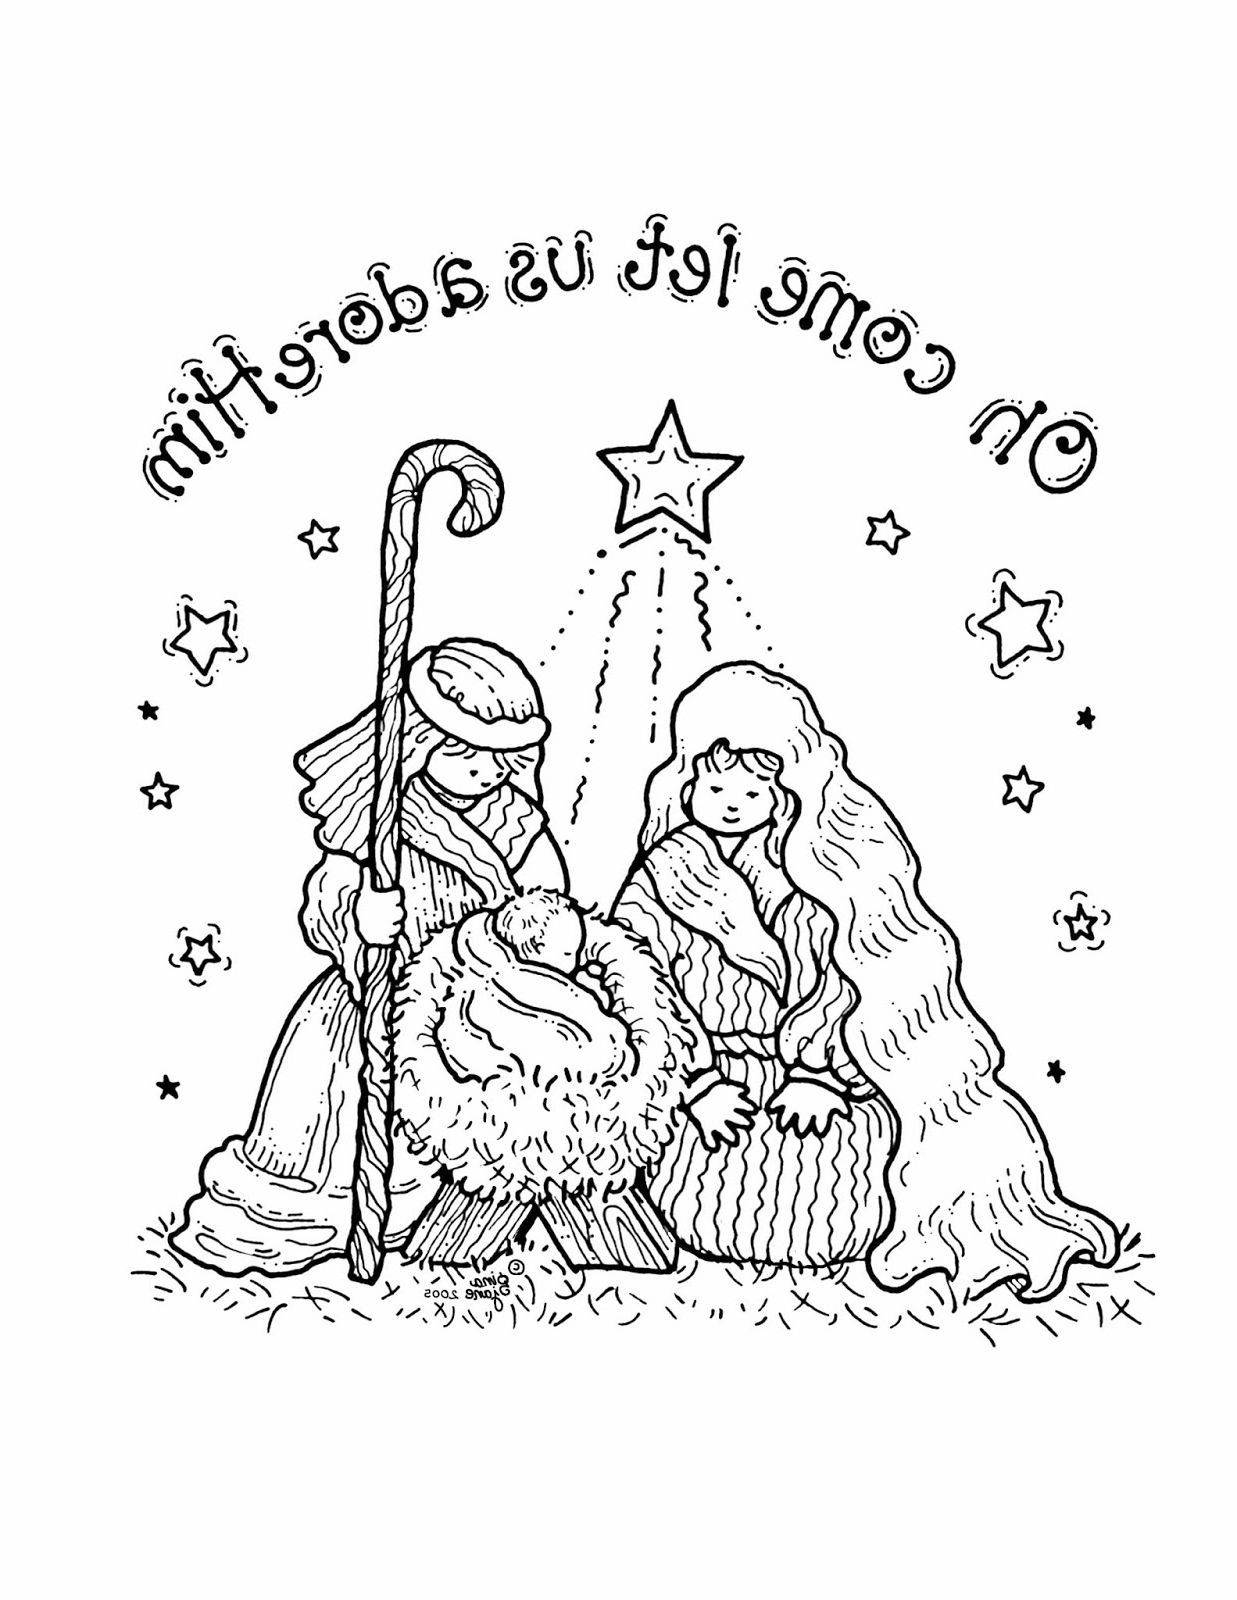 Nativity Coloring Pages Free Printable Nativity coloring